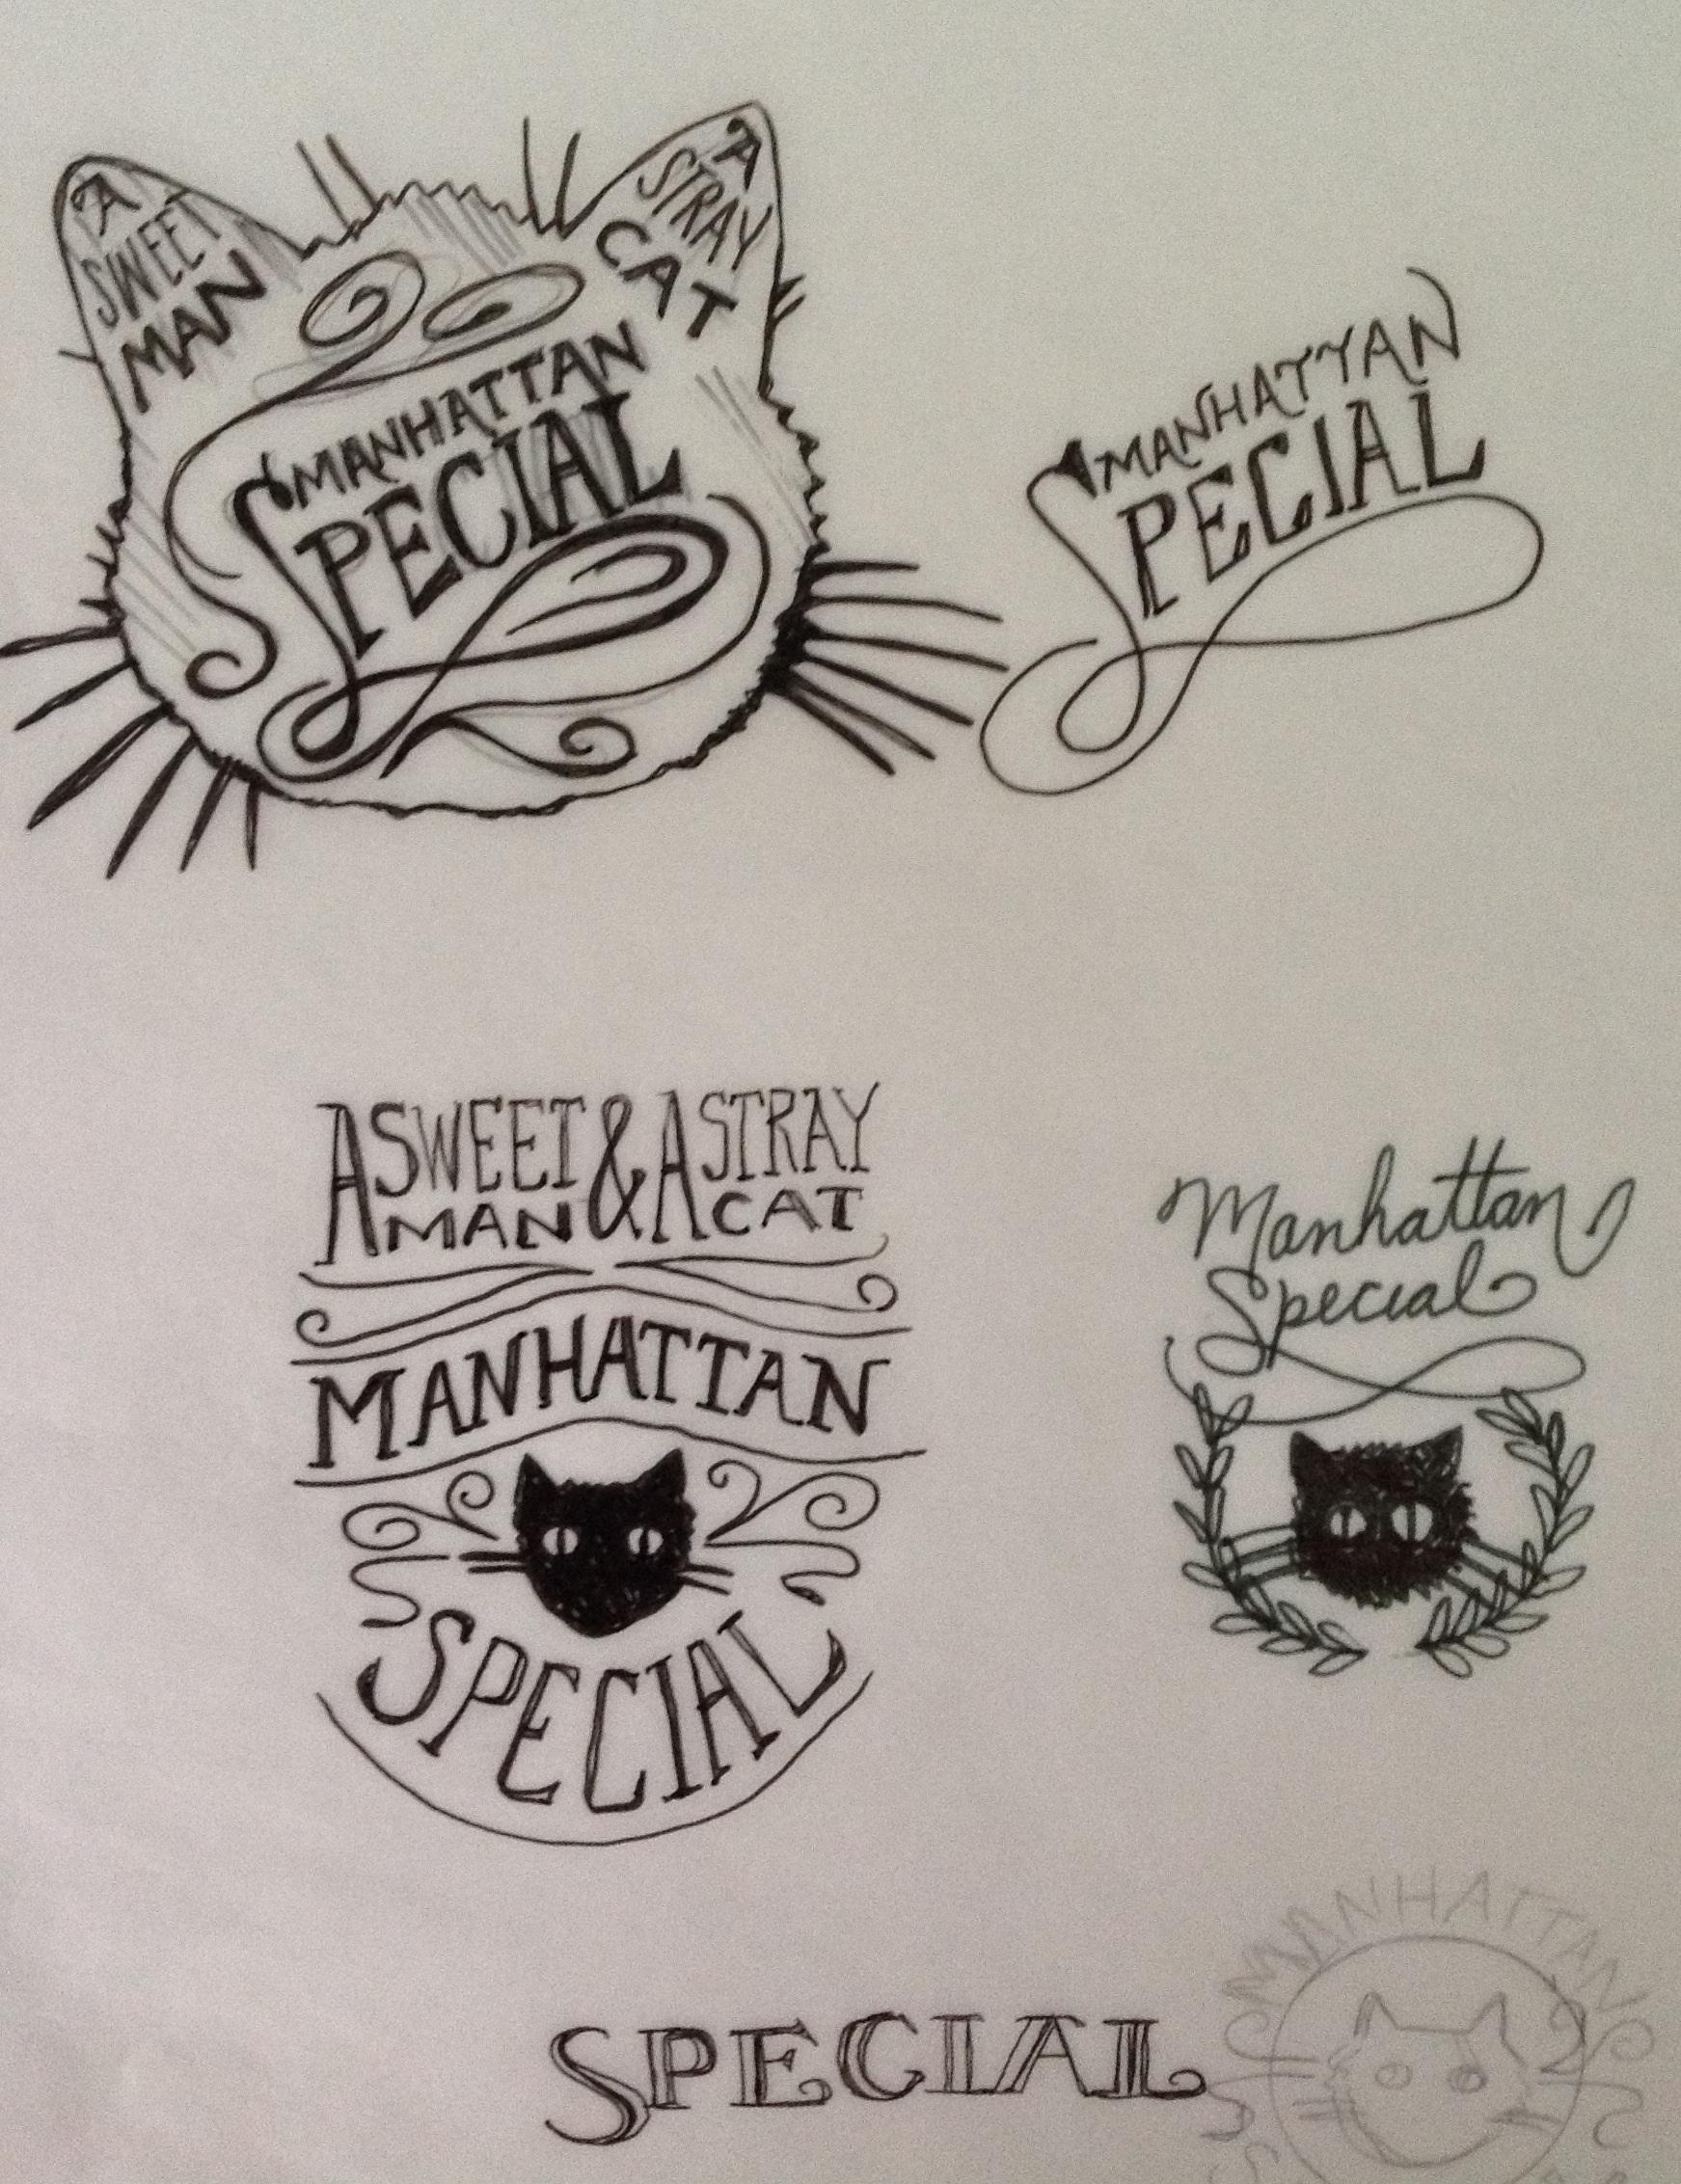 Manhattan Special - image 2 - student project